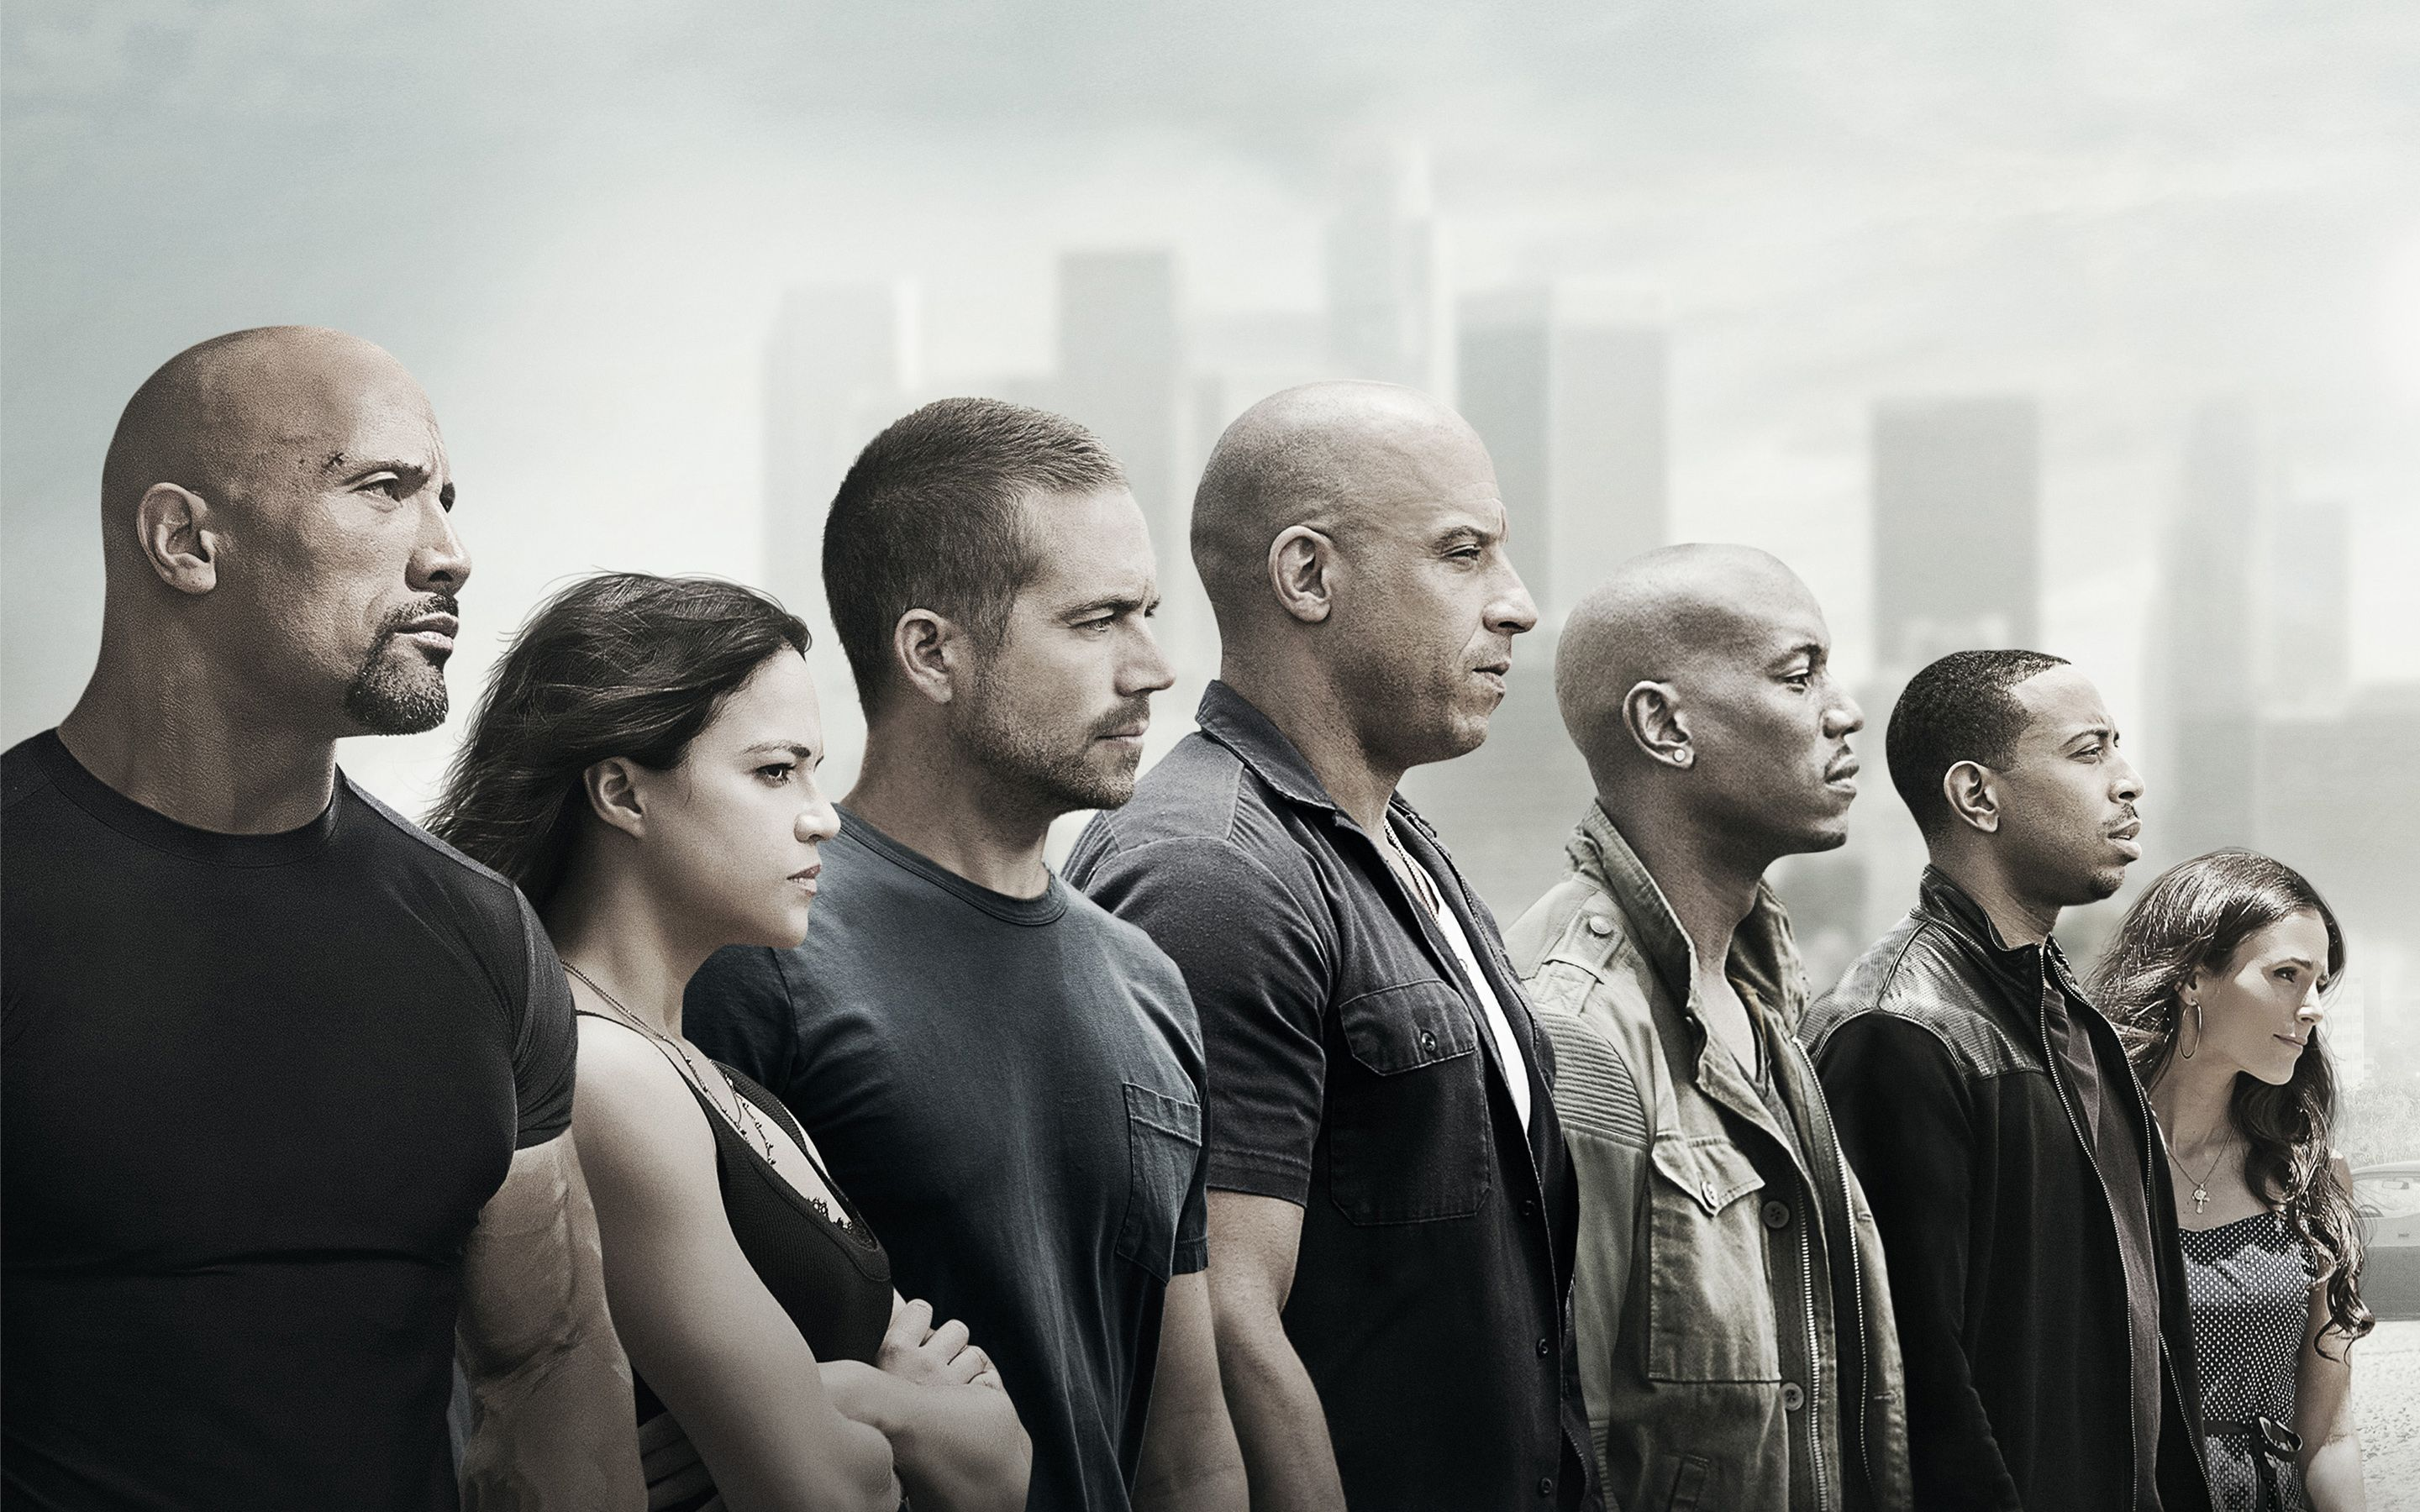 furious 7 full hd movie free download